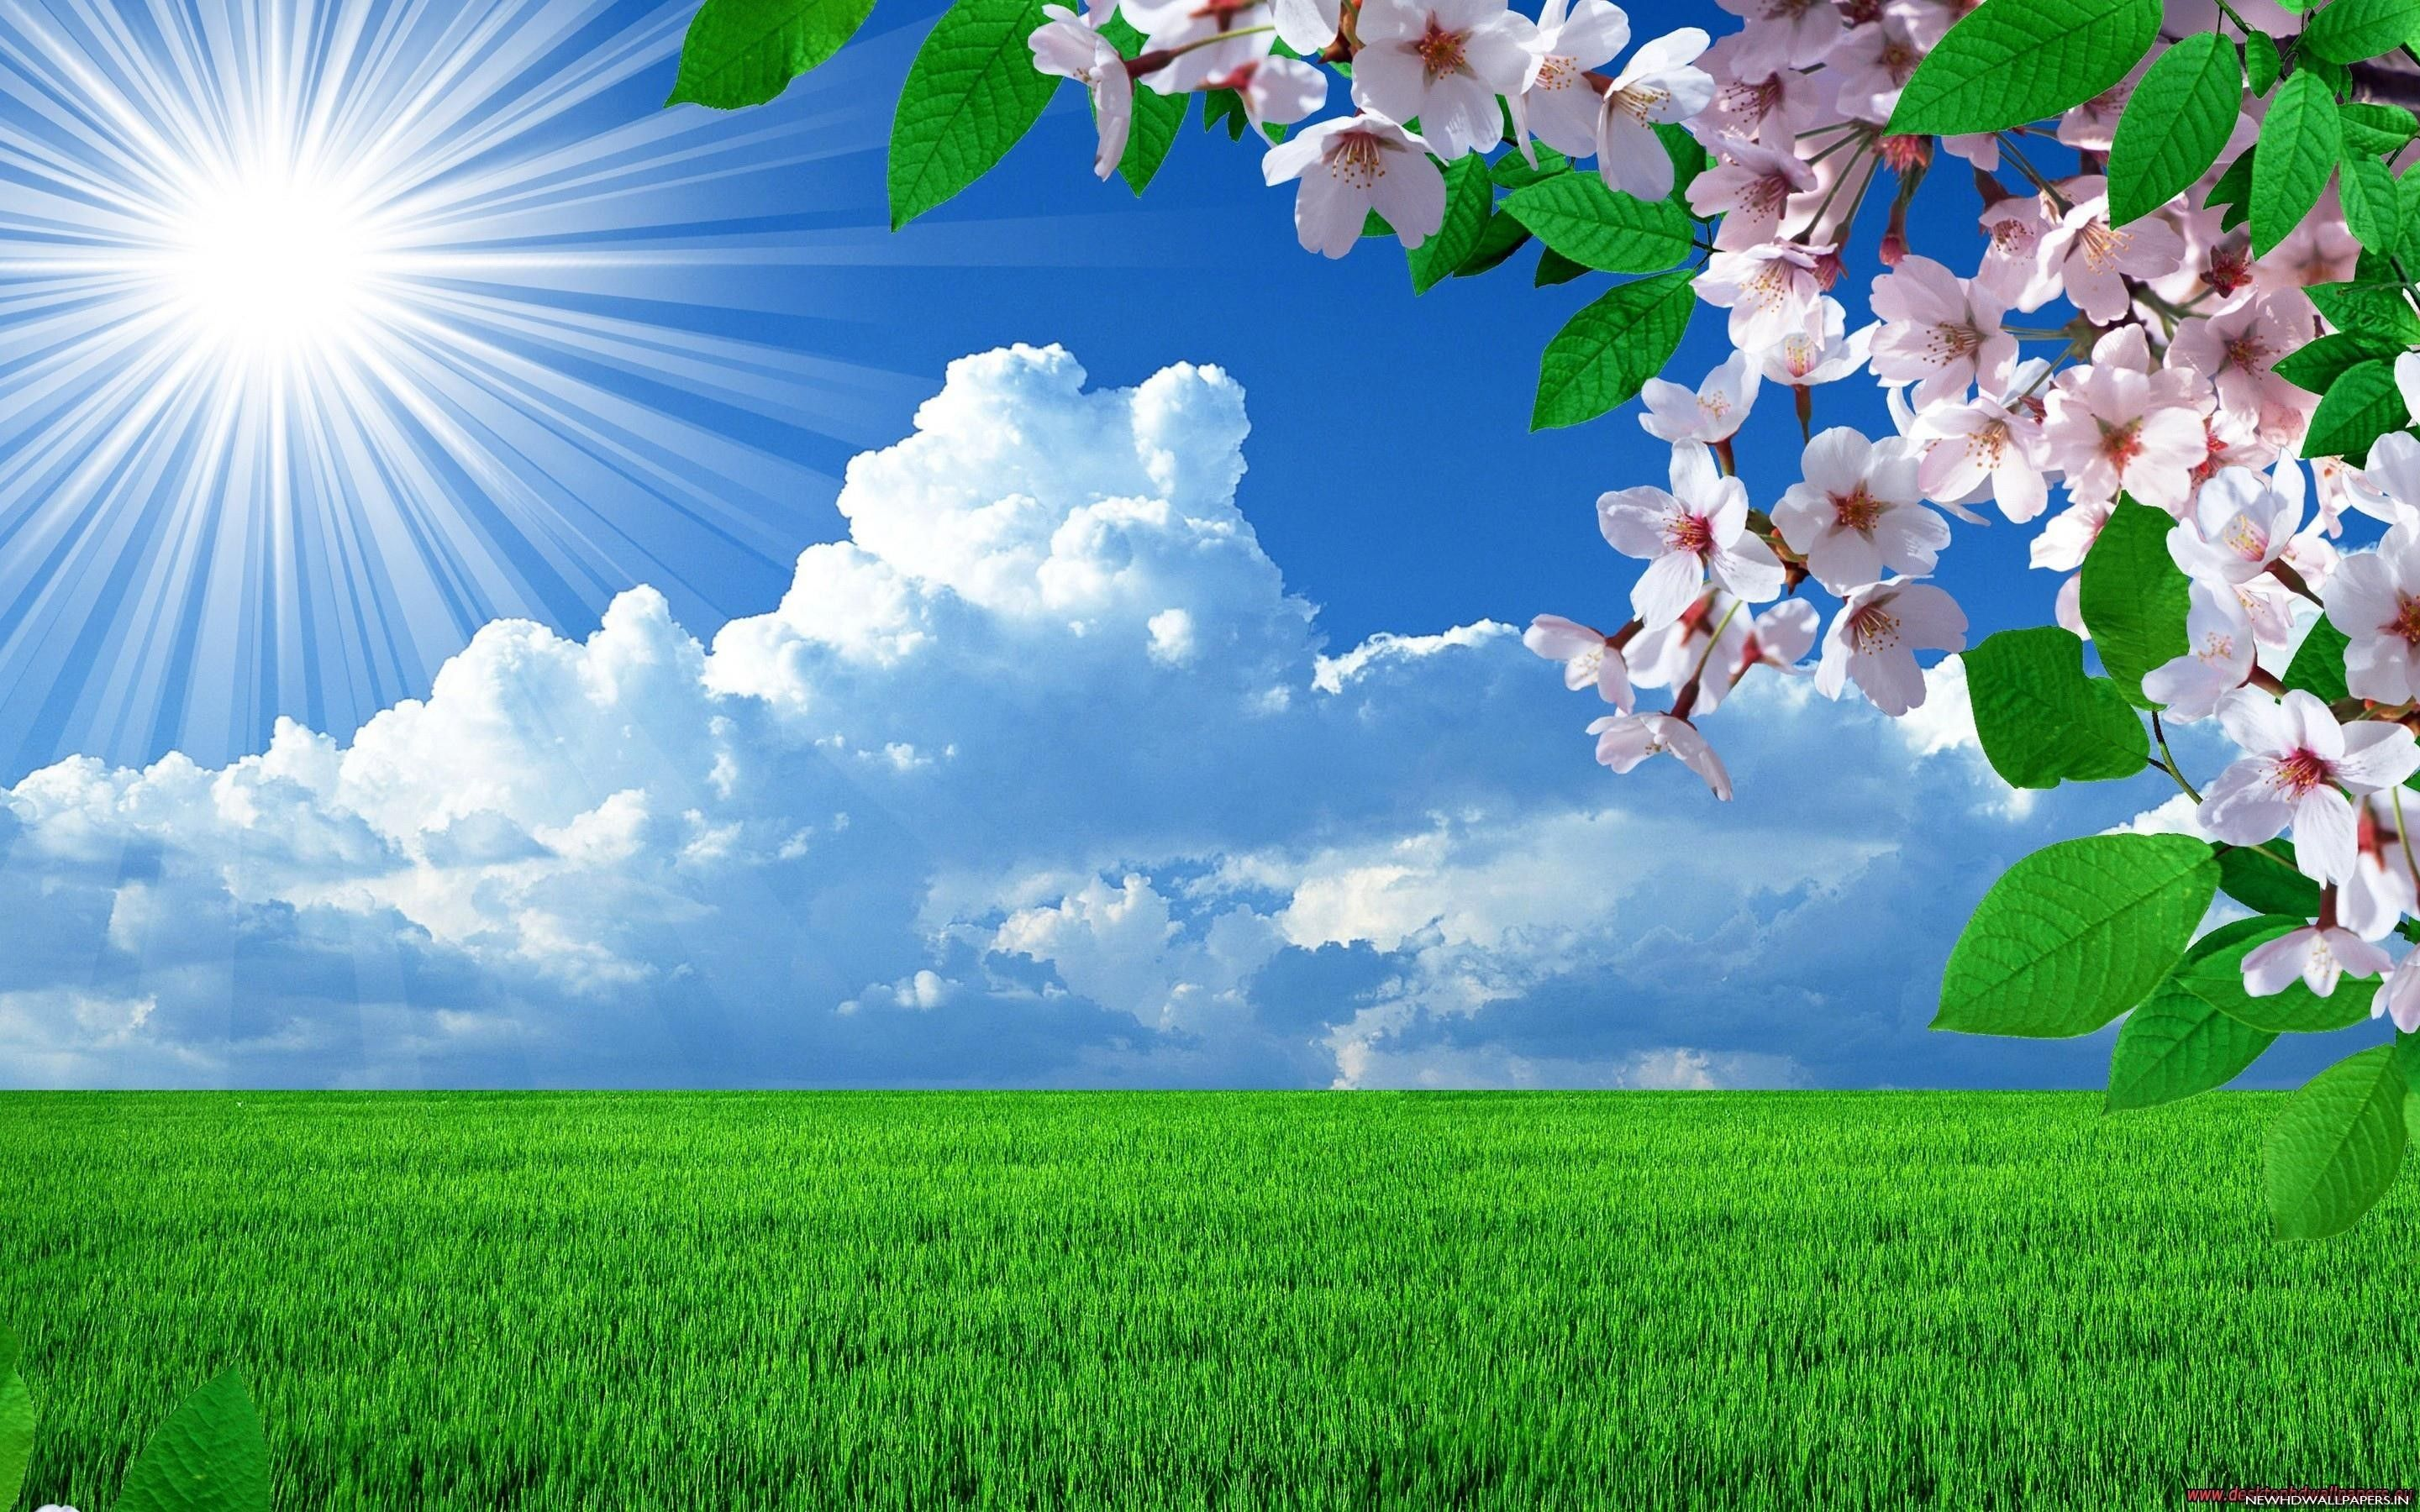 Nature flowers wallpaper nature wallpapers for free ...